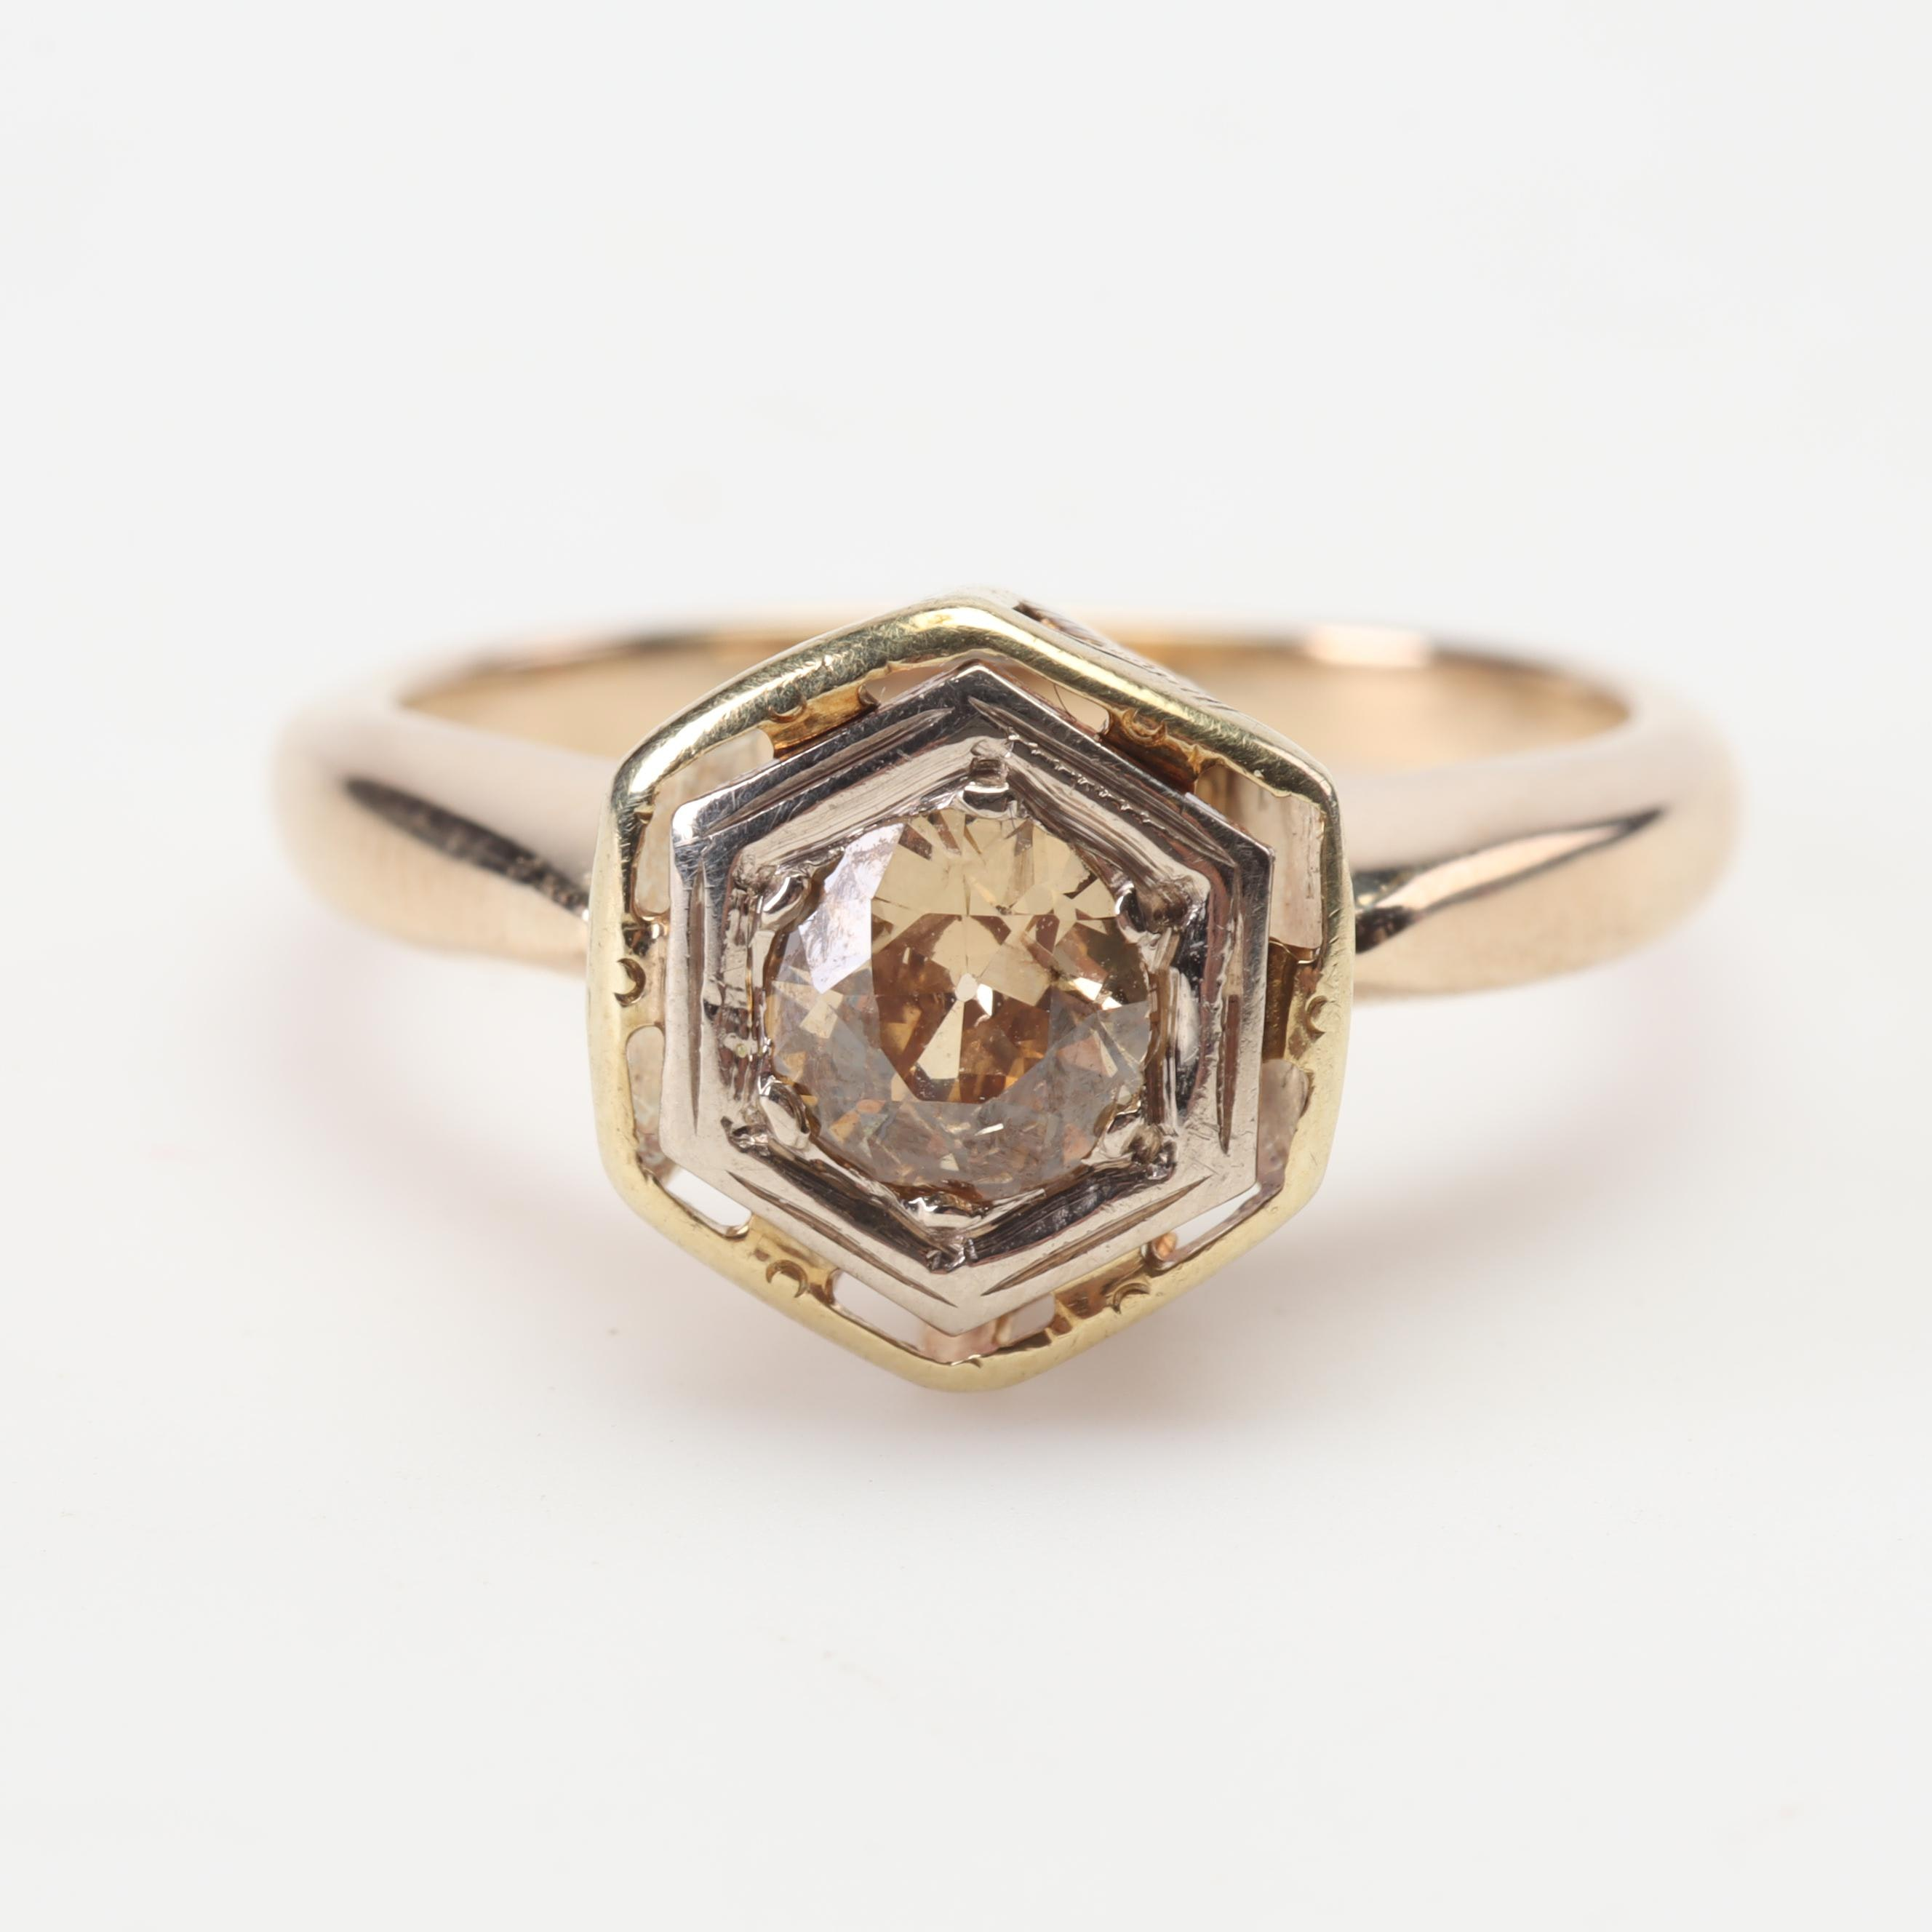 Antique 14K Yellow Gold and Old European Cut Diamond Ring, Circa 1910